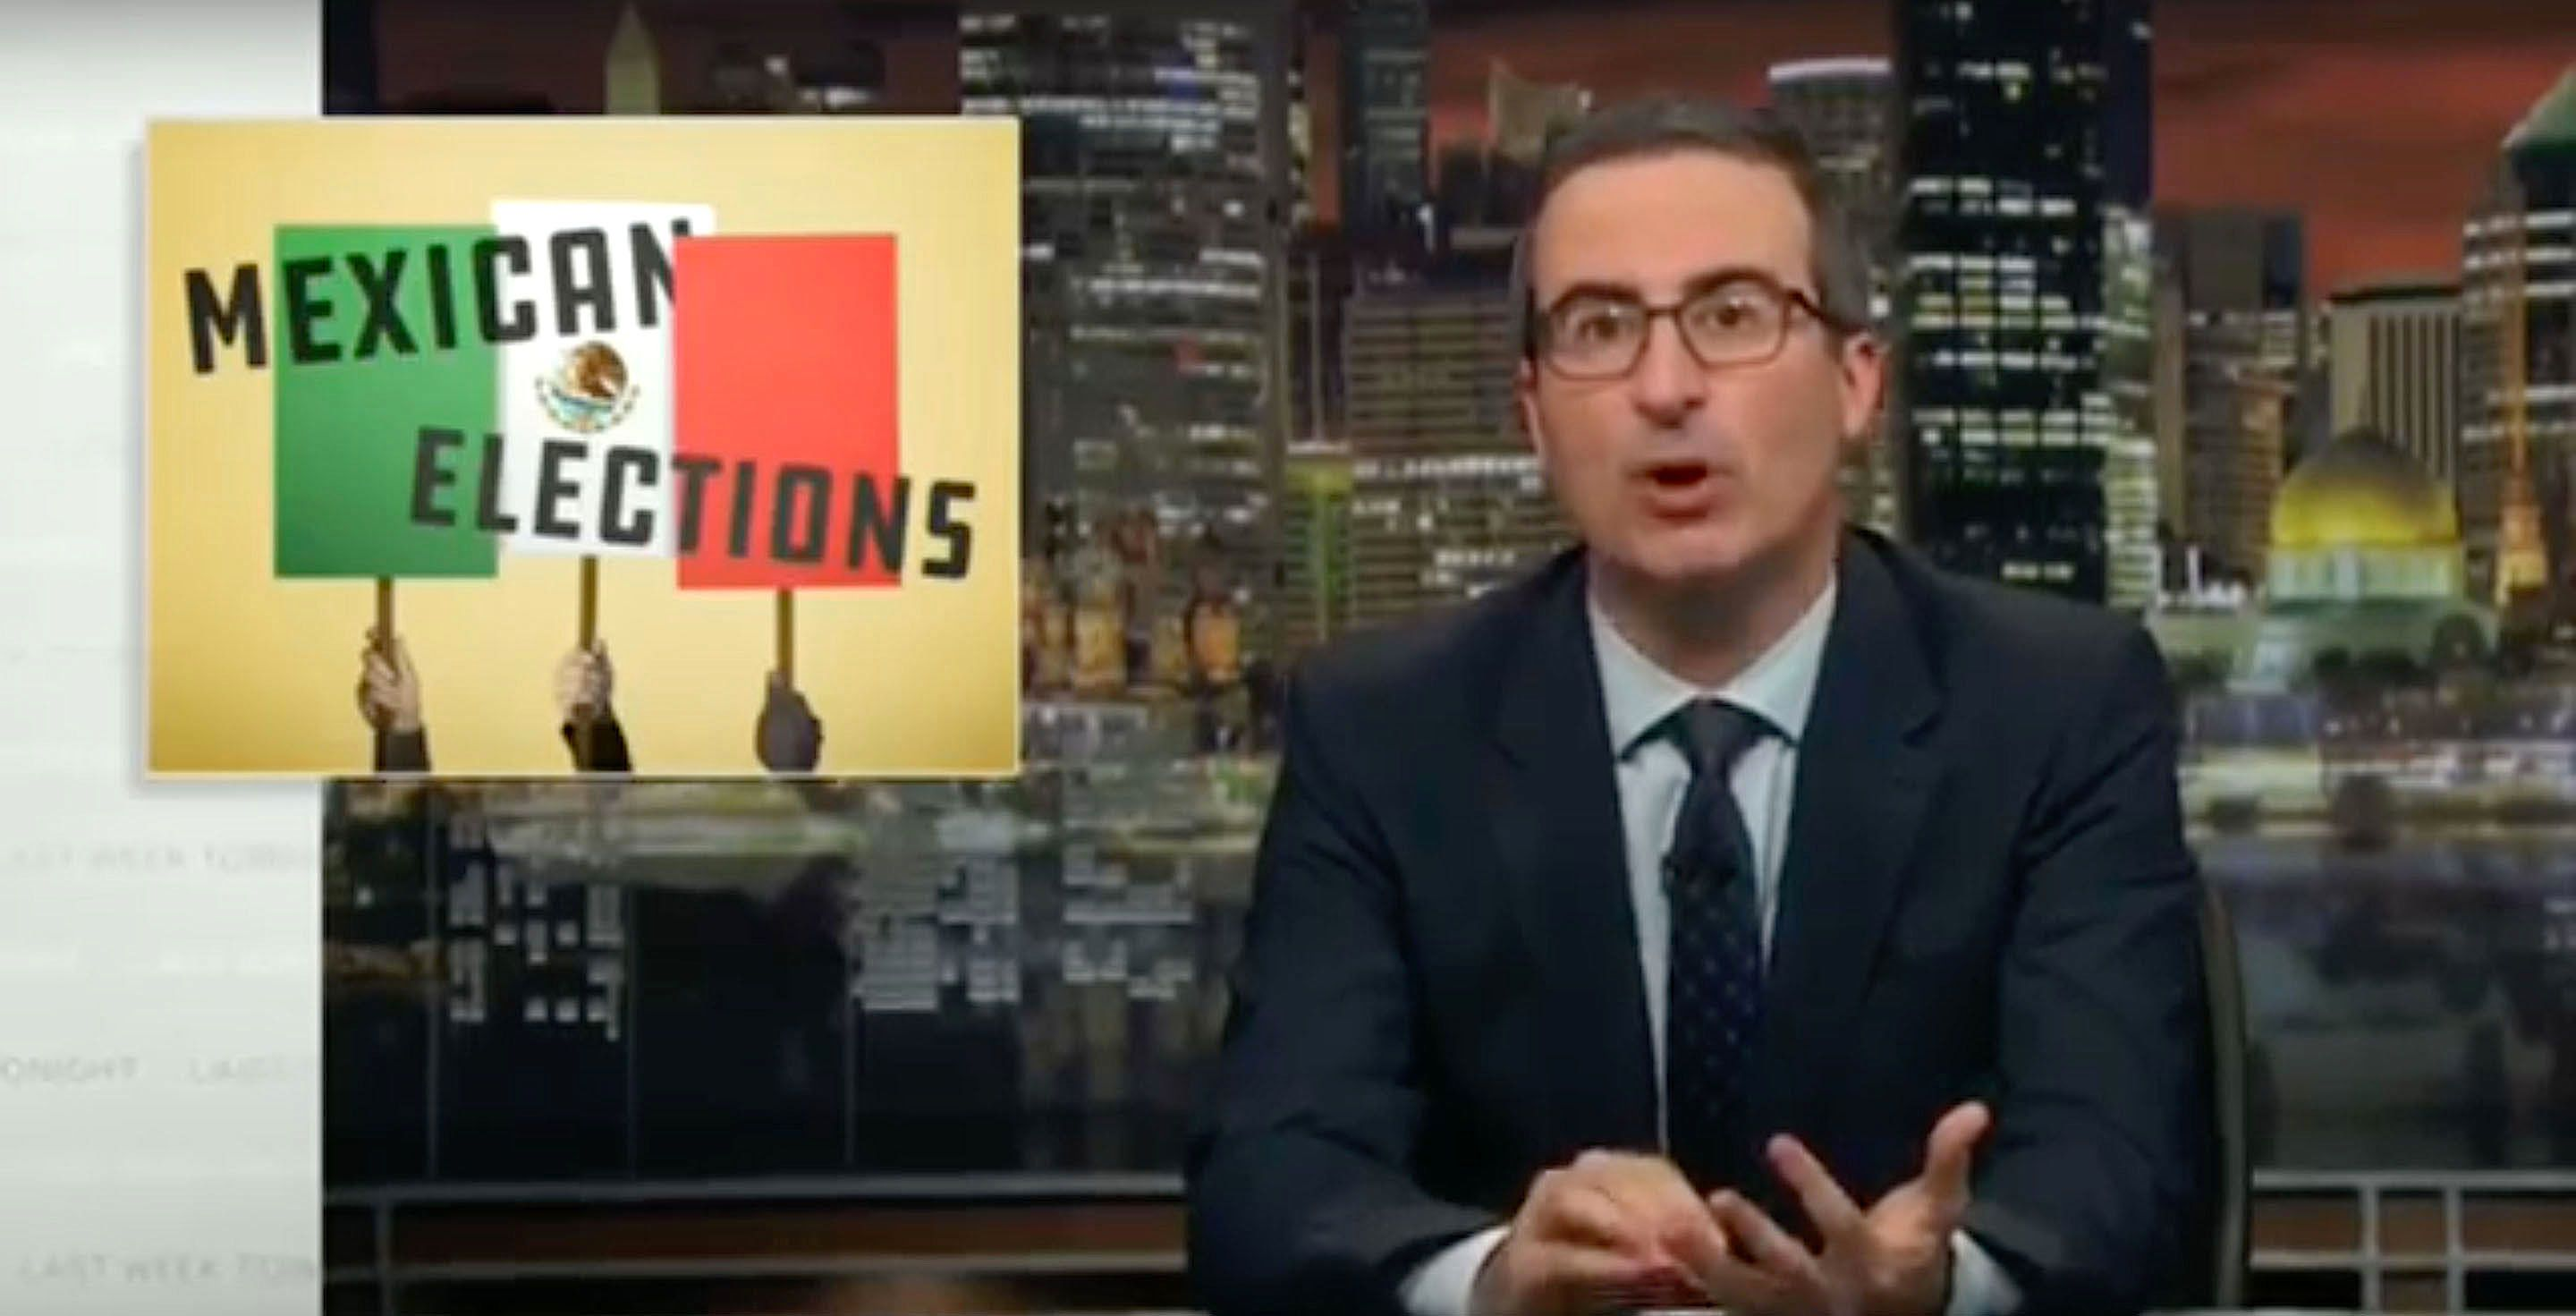 John Oliver explains the Mexican elections on Last Week Tonight